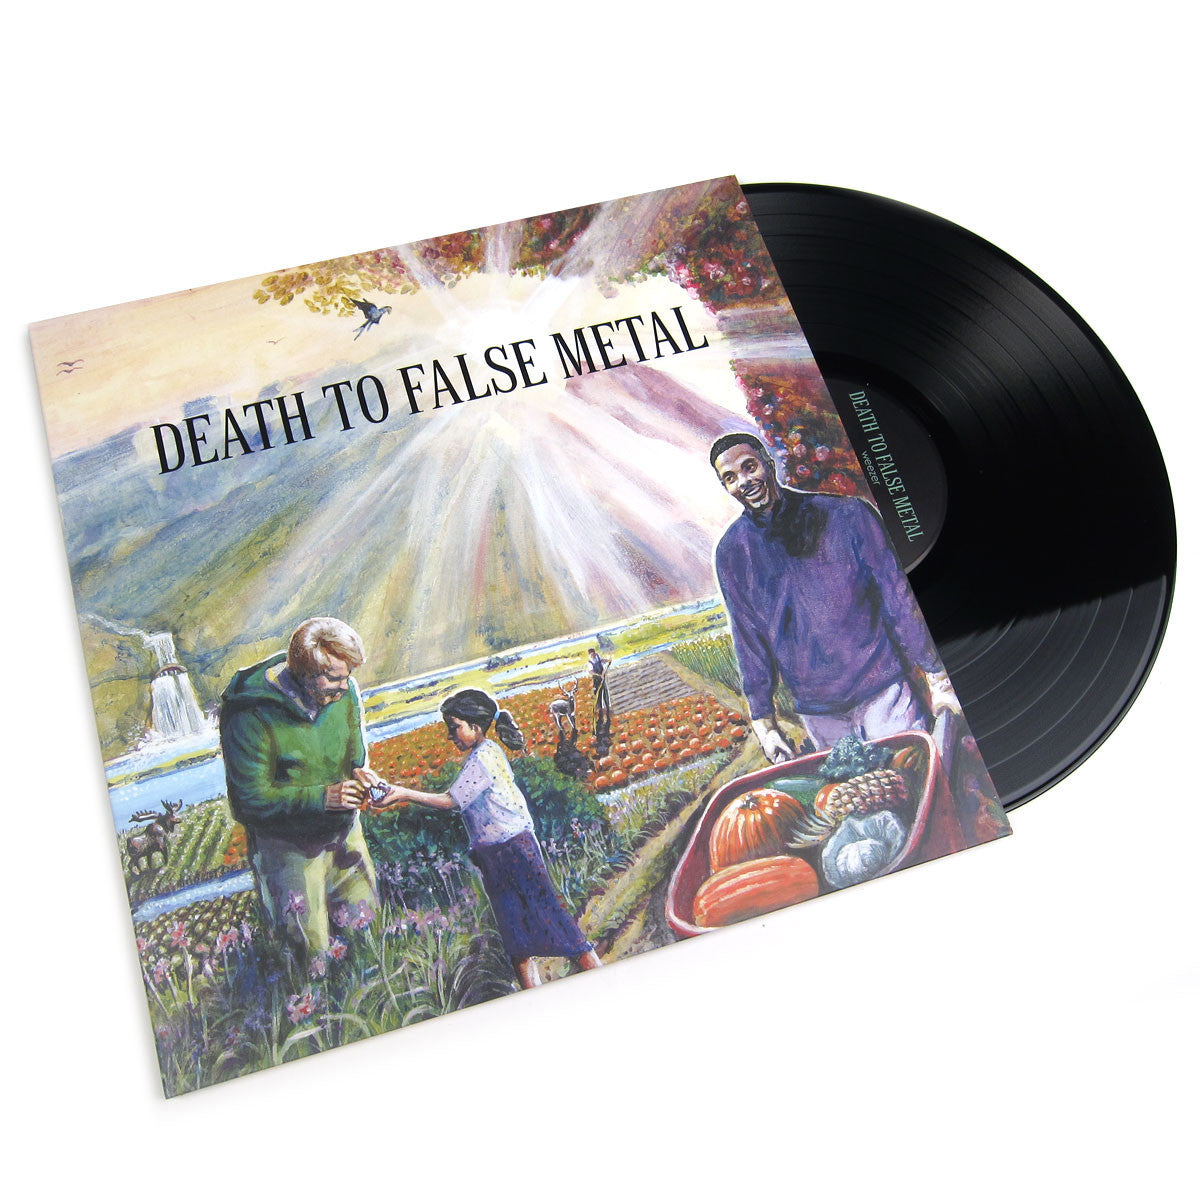 Weezer: Death To False Metal (180g, Numbered) Vinyl LP